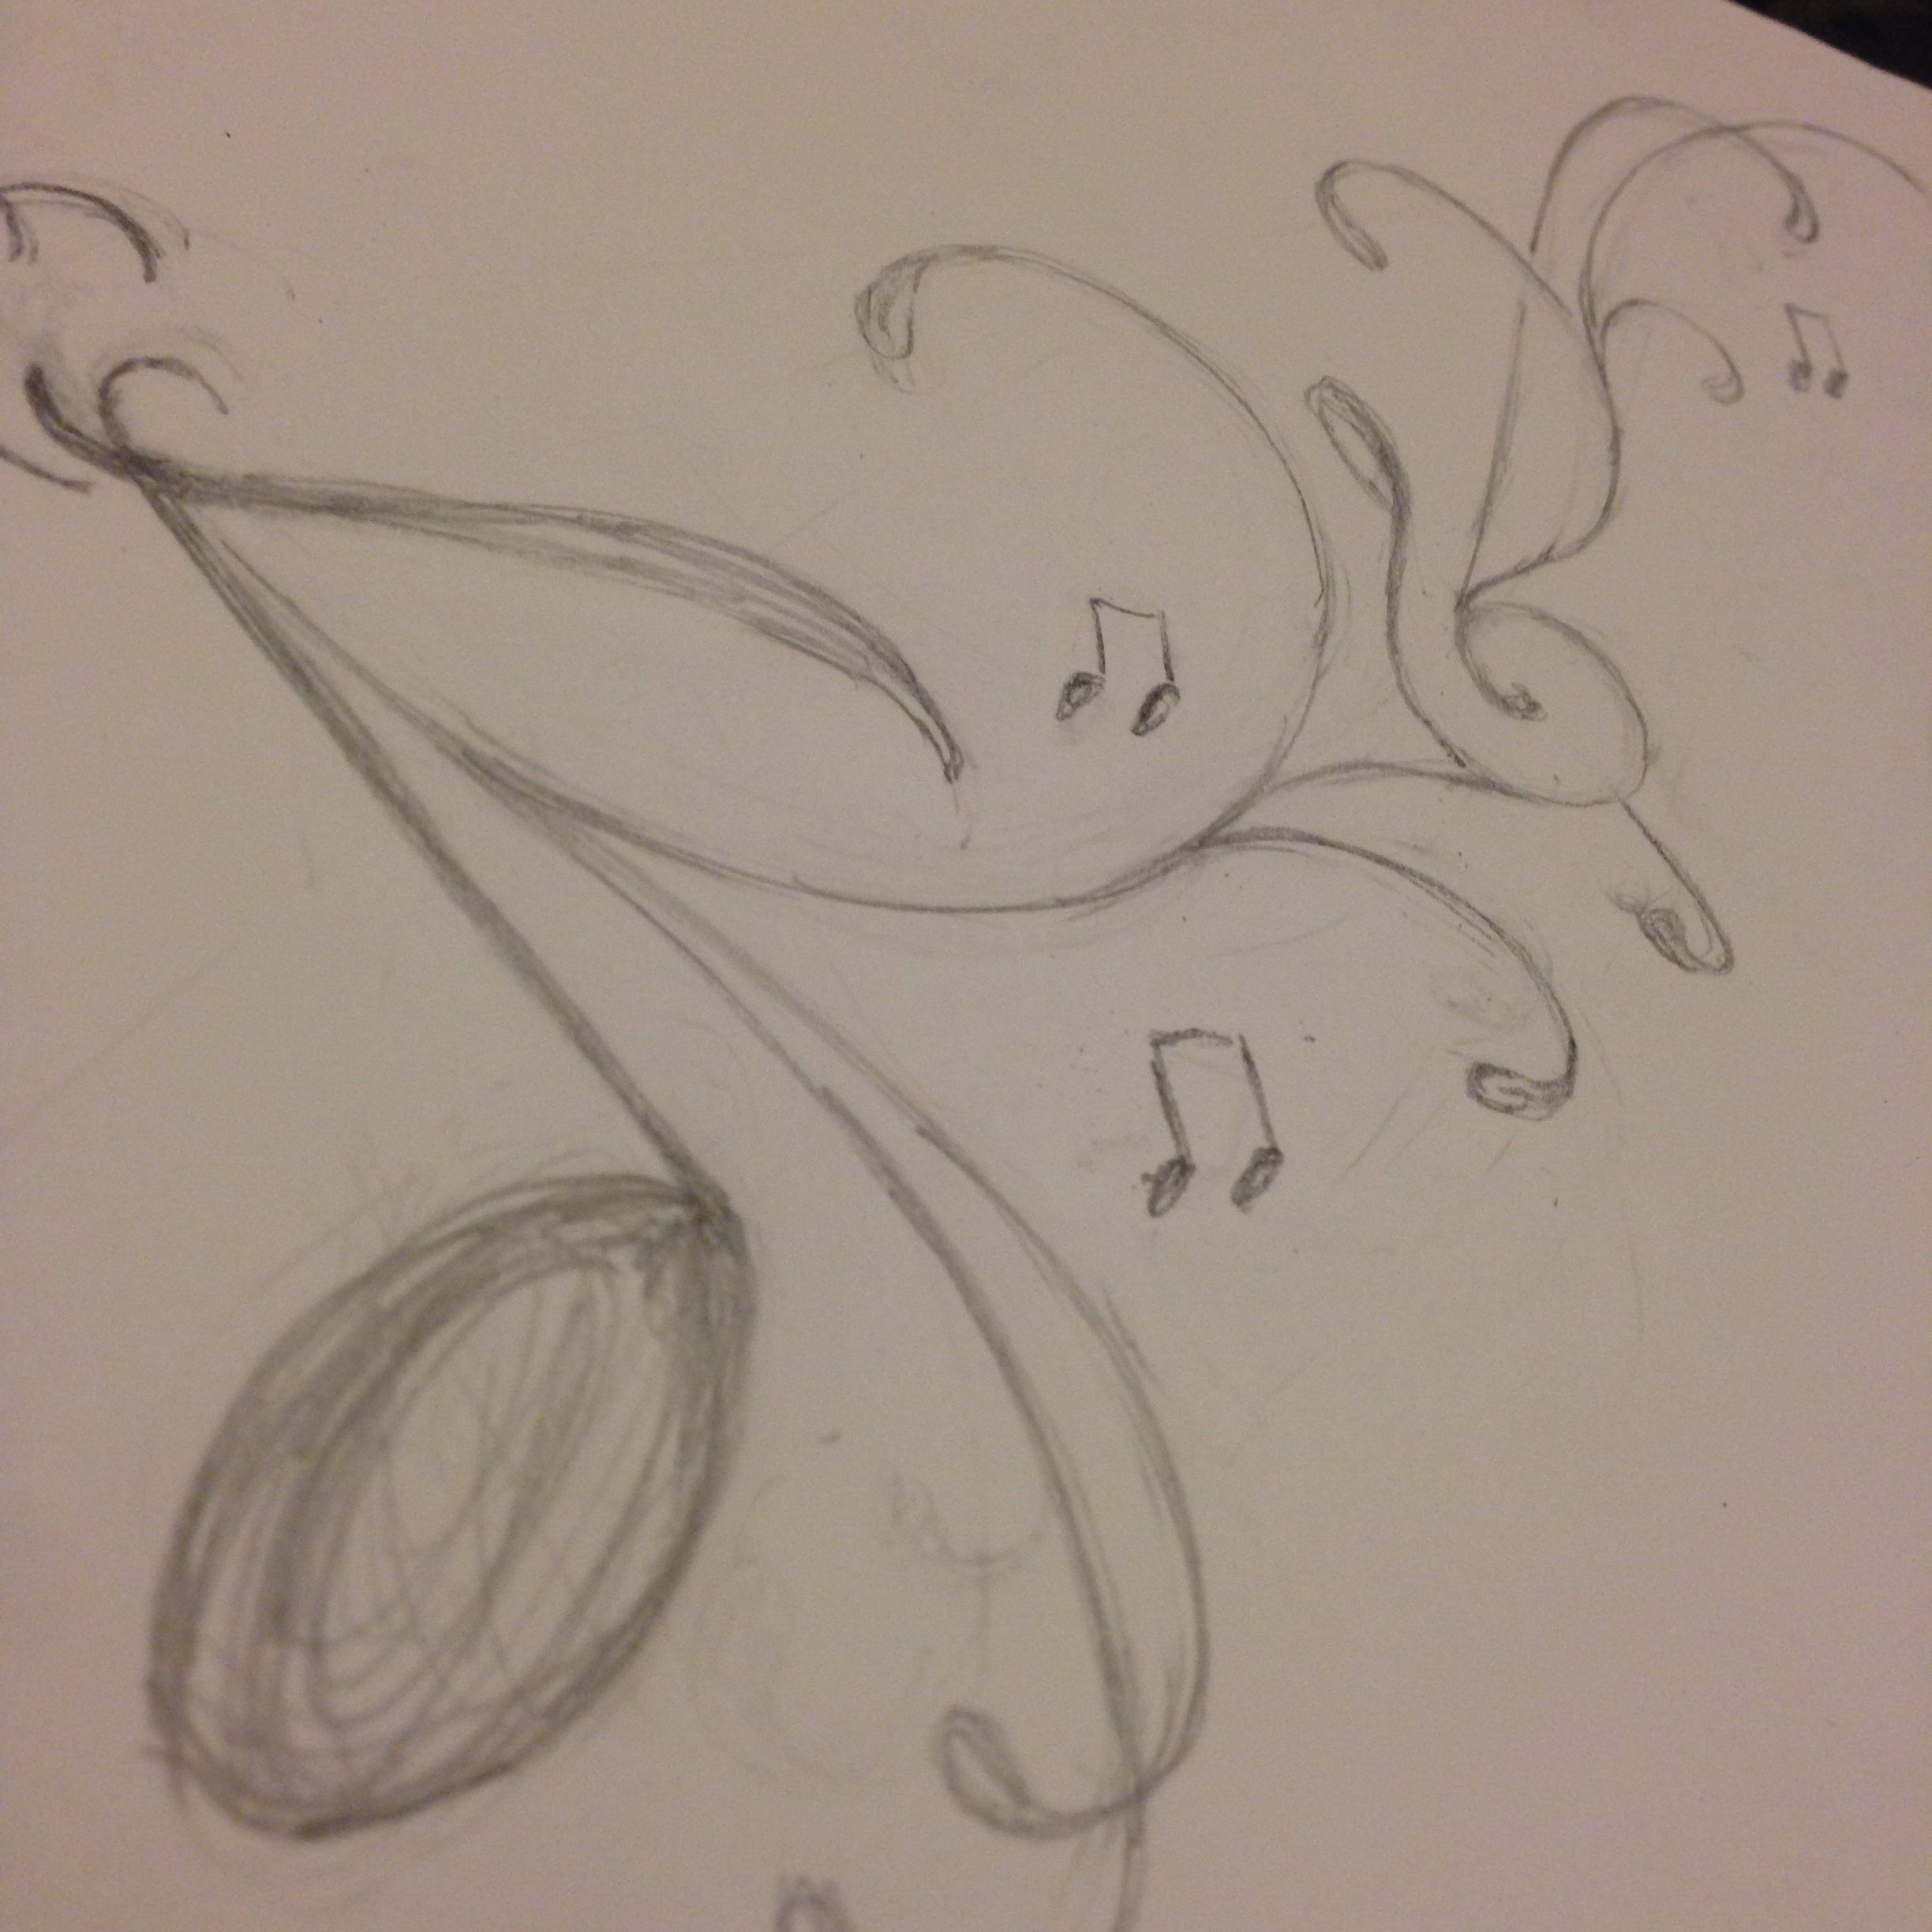 90d579e6b Pencil sketch music tattoo idea (Beautiful sketch by my friend...)